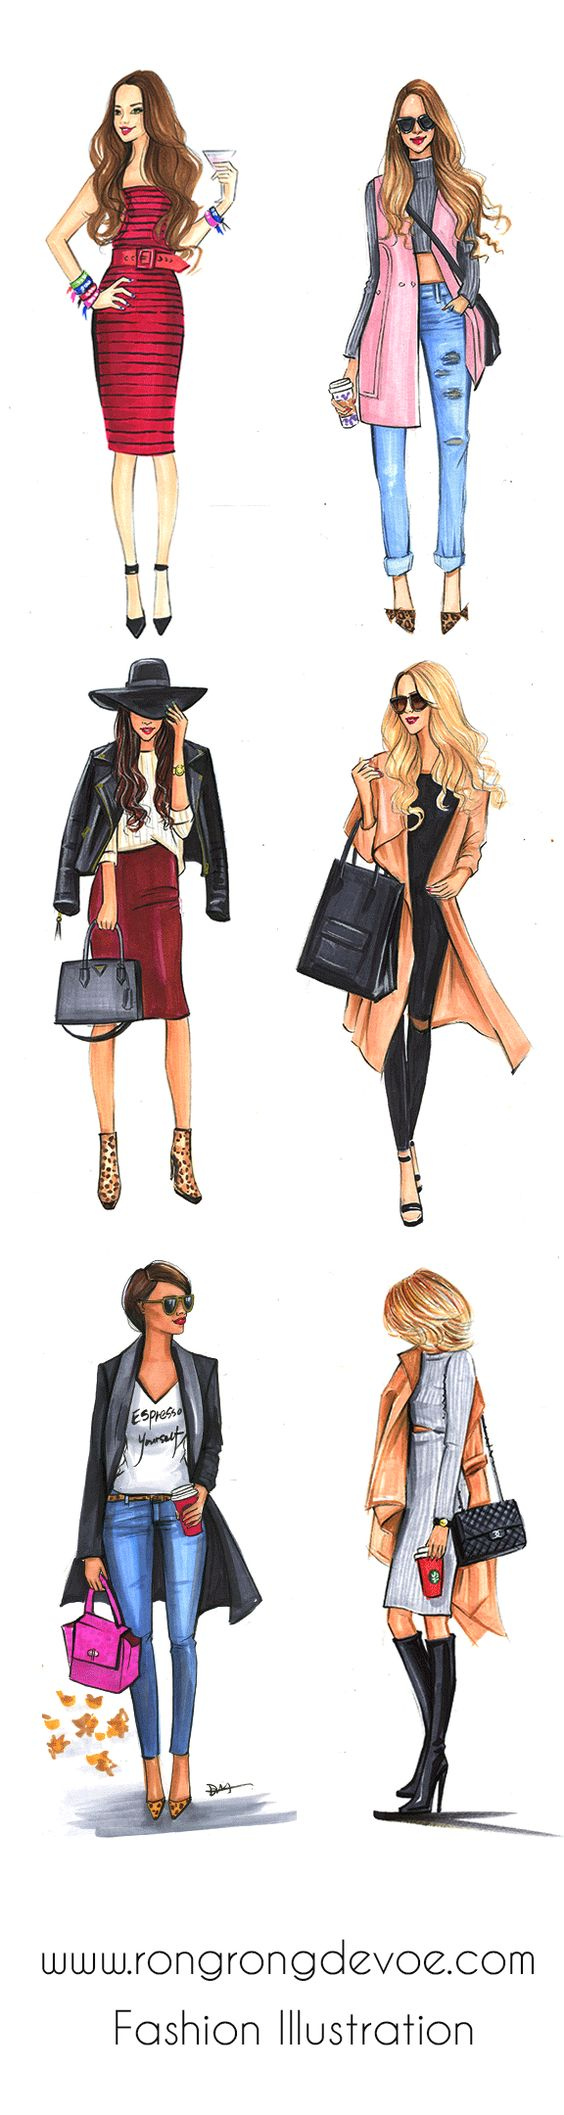 Fashion Illustrations of Street Style fashion by Houston fashion Illustrator Rongrong DeVoe. More fashion Sketches on www.rongorngdevoe.com